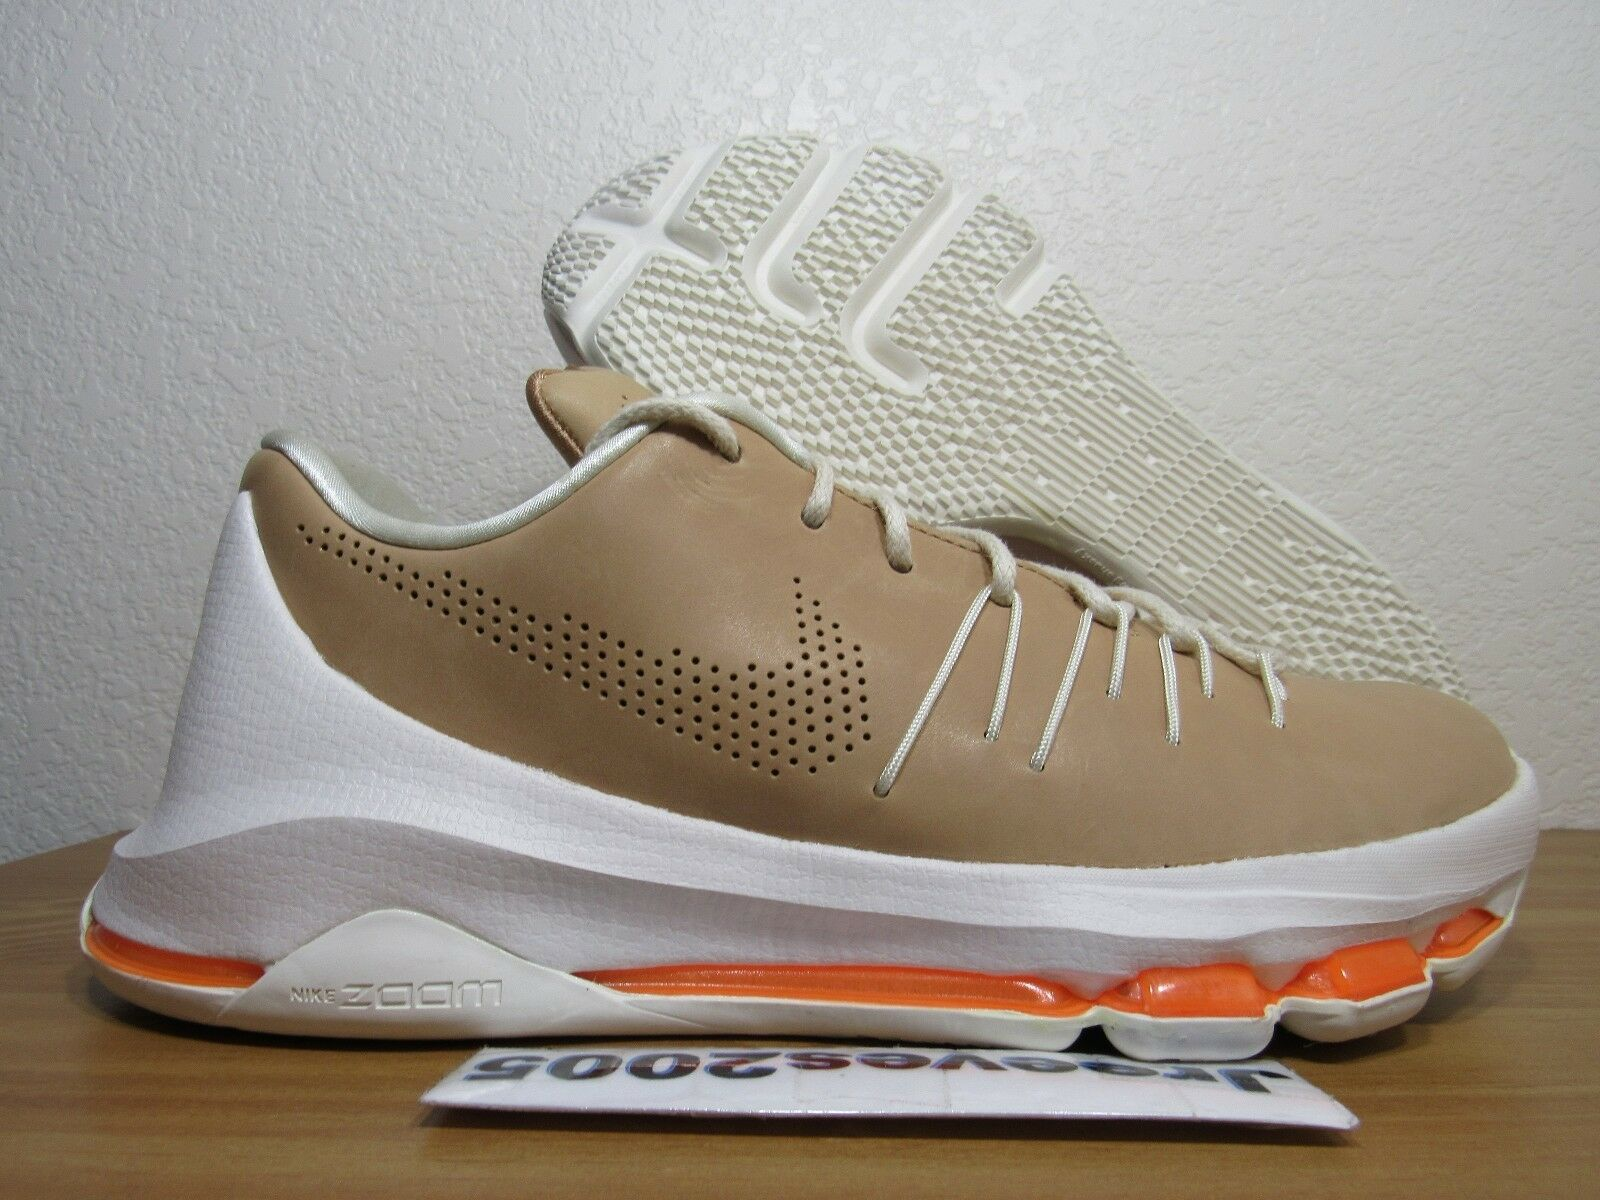 KD 8 EXT Vachetta Tan Sz 8 100% Authentic Nike Retro VIII 806393 200